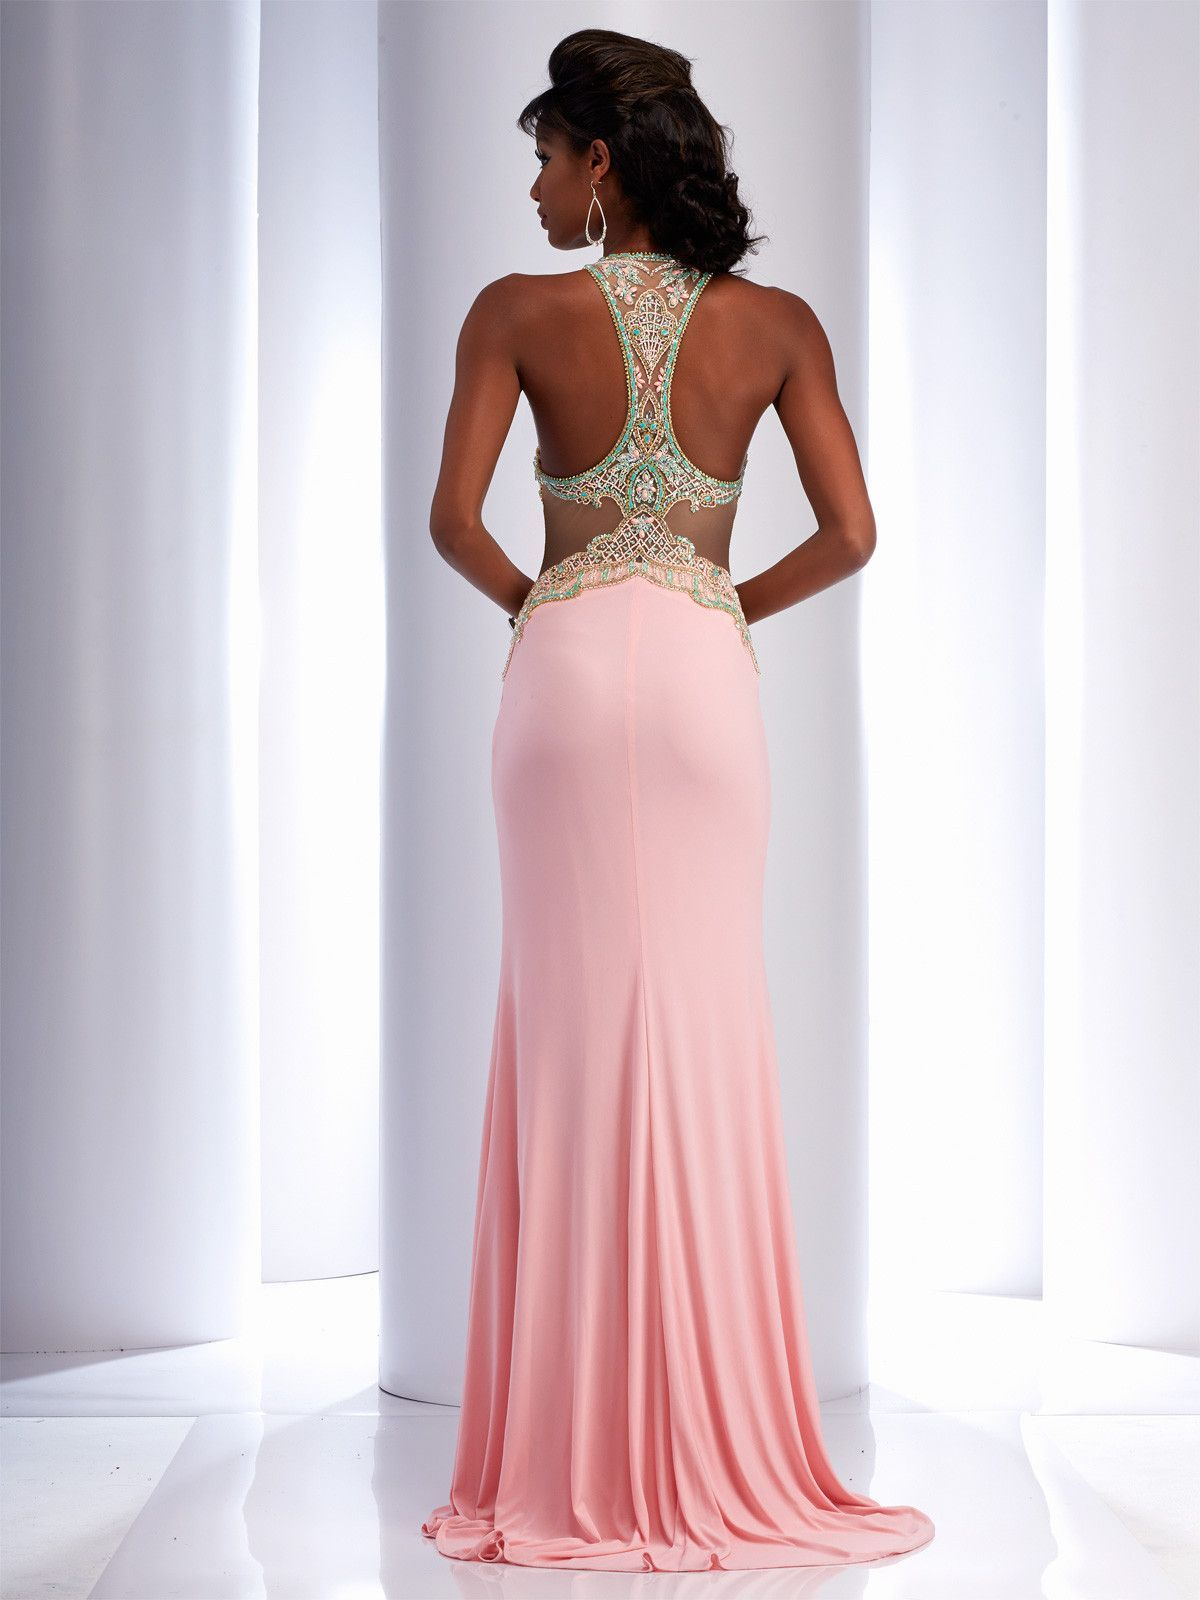 Clarisse 4738 Light Pink/Mint | prom | Pinterest | Prom and Dress ideas